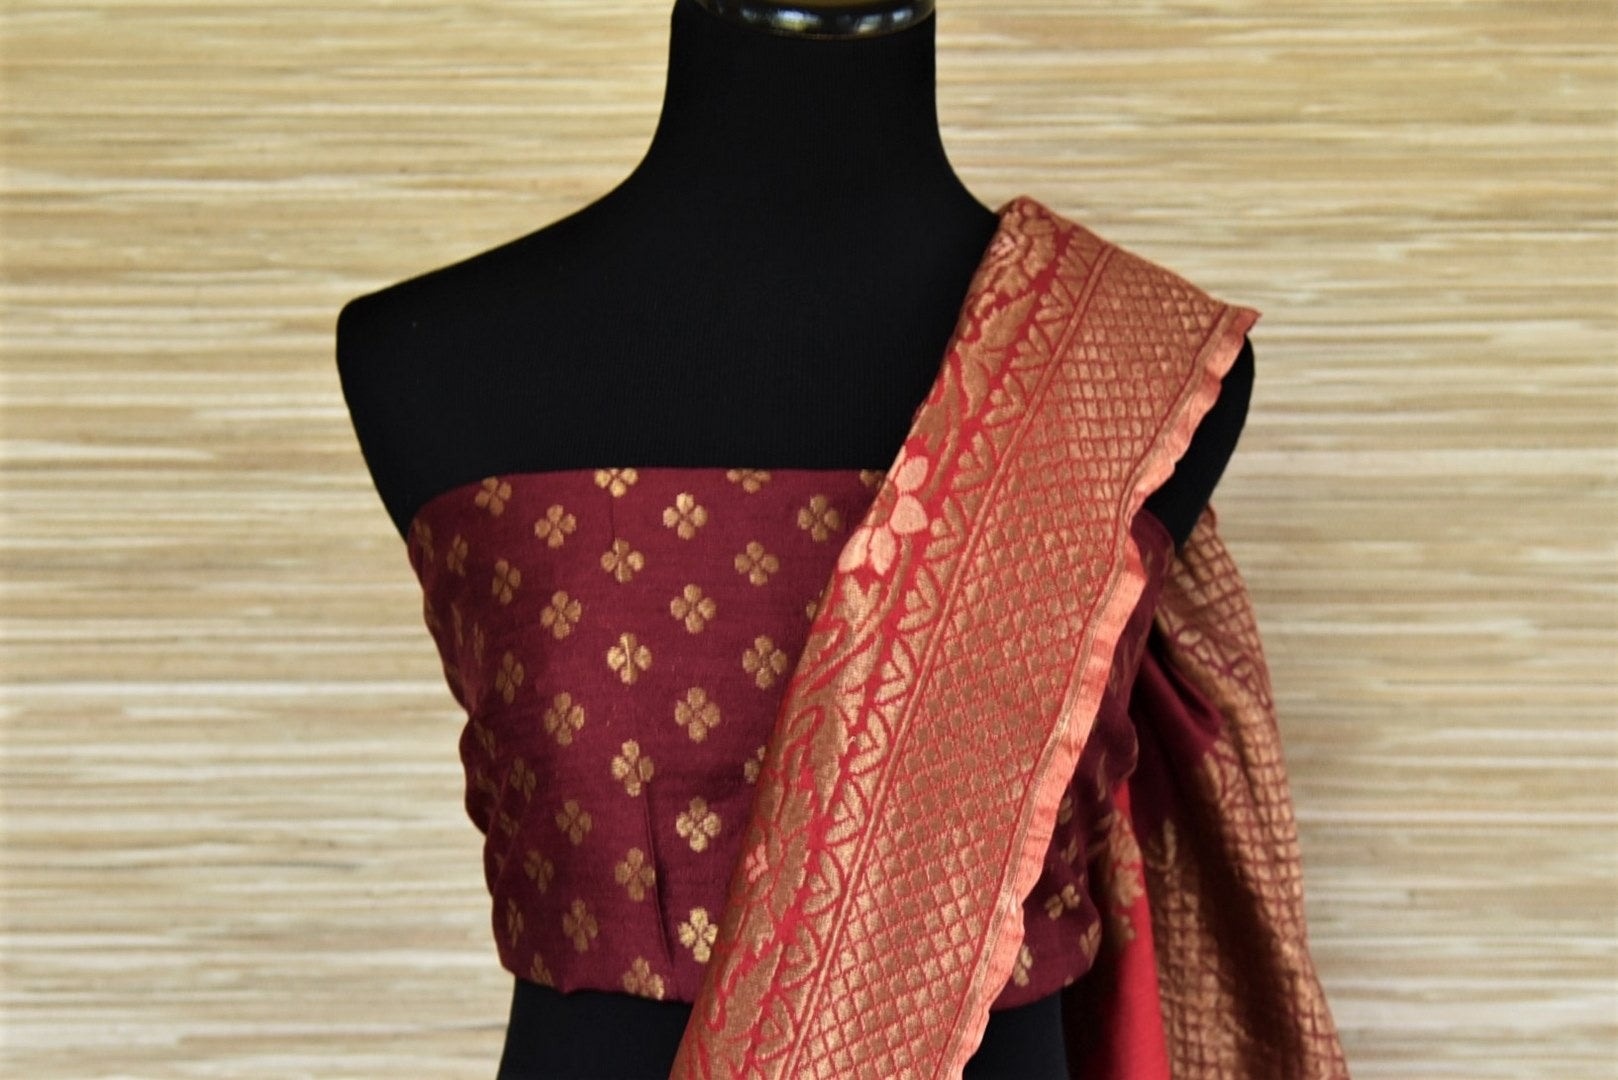 Buy maroon two-tone muga Benarasi saree online in USA with zari border. Grab exquisite Banarasi saris, embroidered saris, pure silk sarees for the coming festive and wedding season from Pure Elegance Indian boutique in USA. Shop online now.-blouse pallu